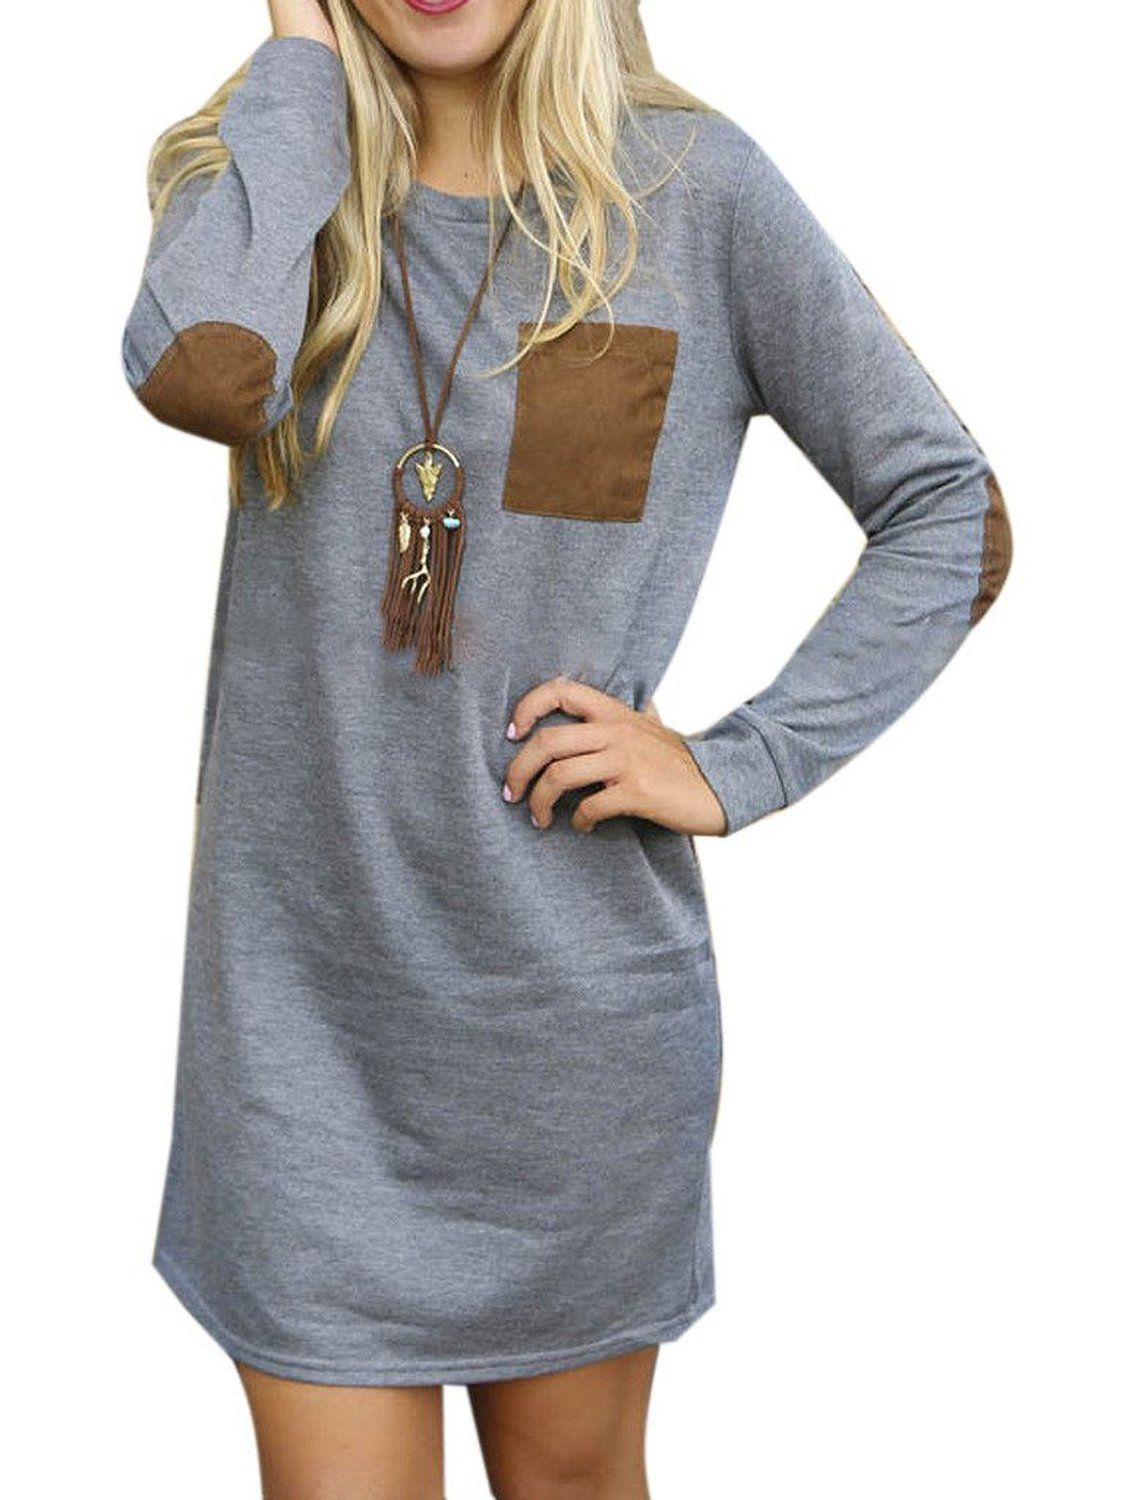 Choies womenus gray cotton elbow and pocket patch long sleeve loose